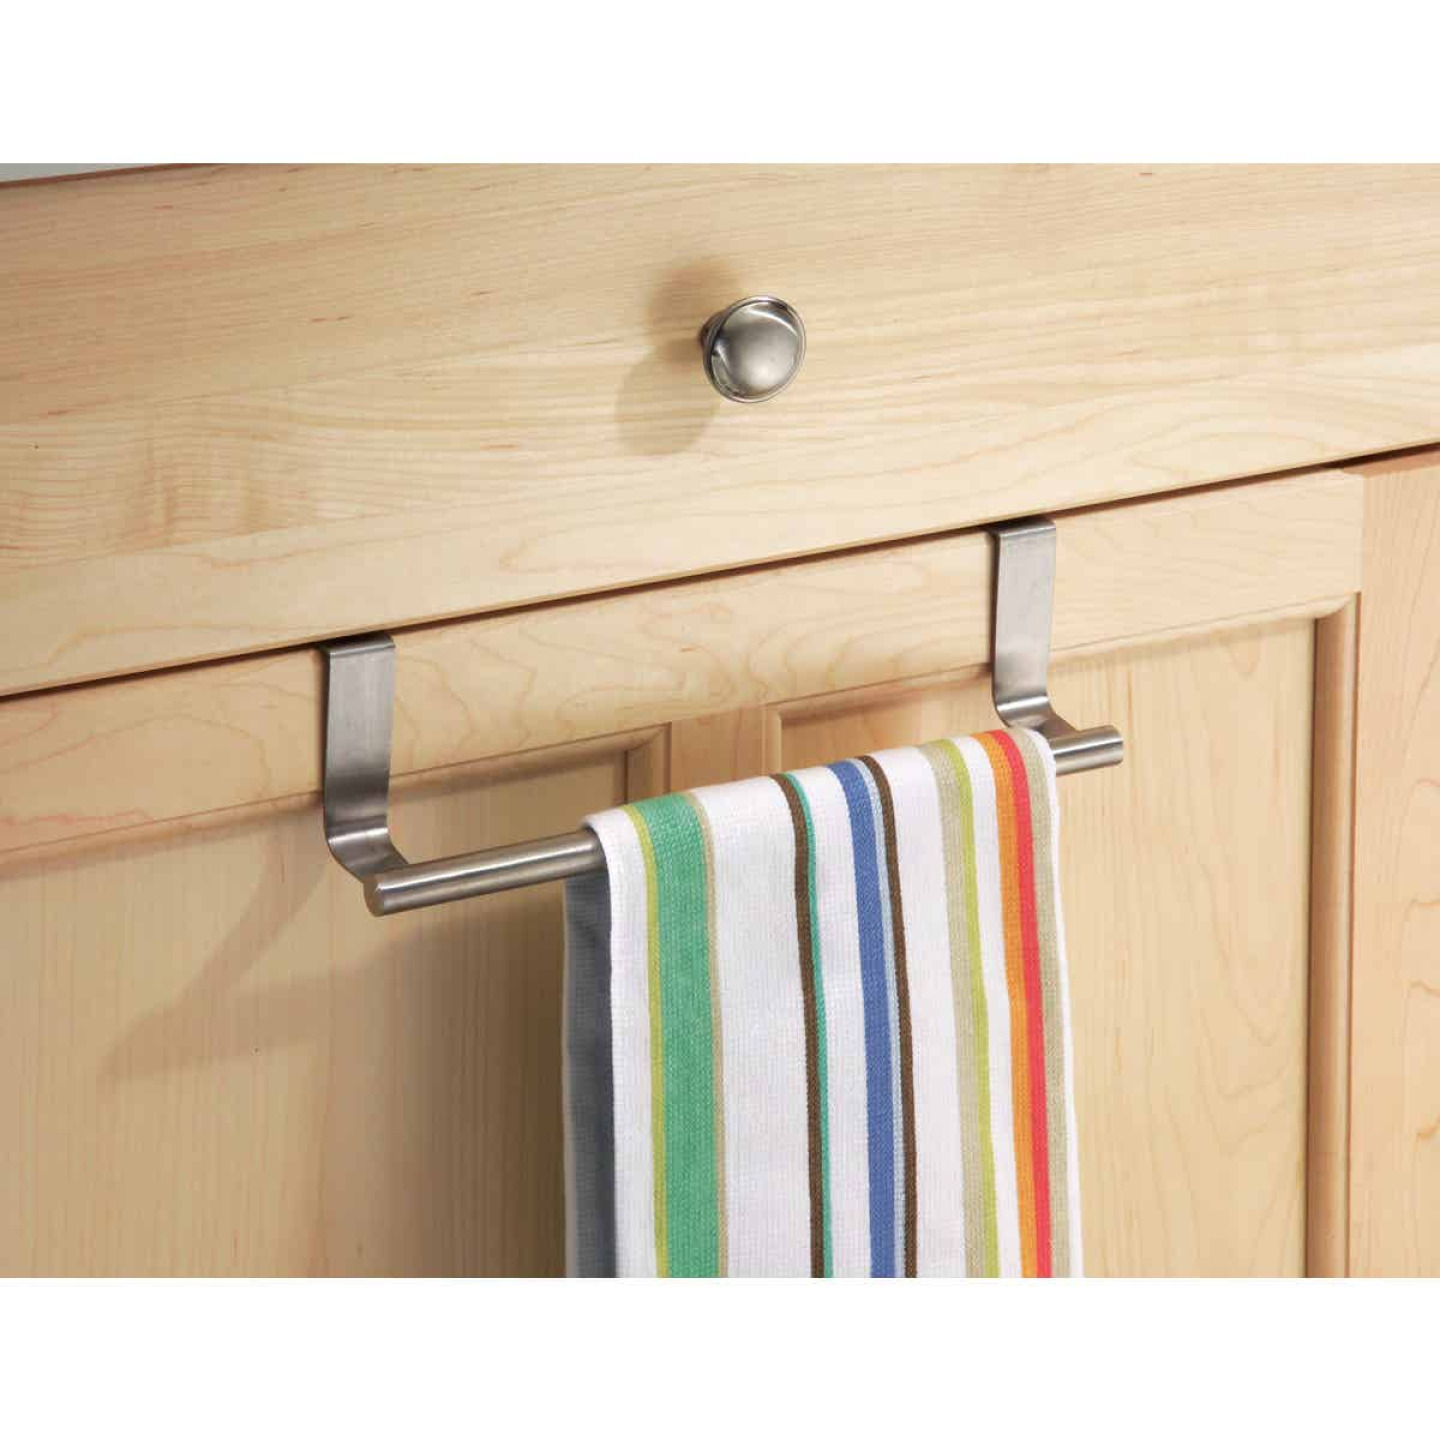 InterDesign Zia 9-1/4 in. Brushed Stainless Steel Over The Cabinet Towel Bar Image 3